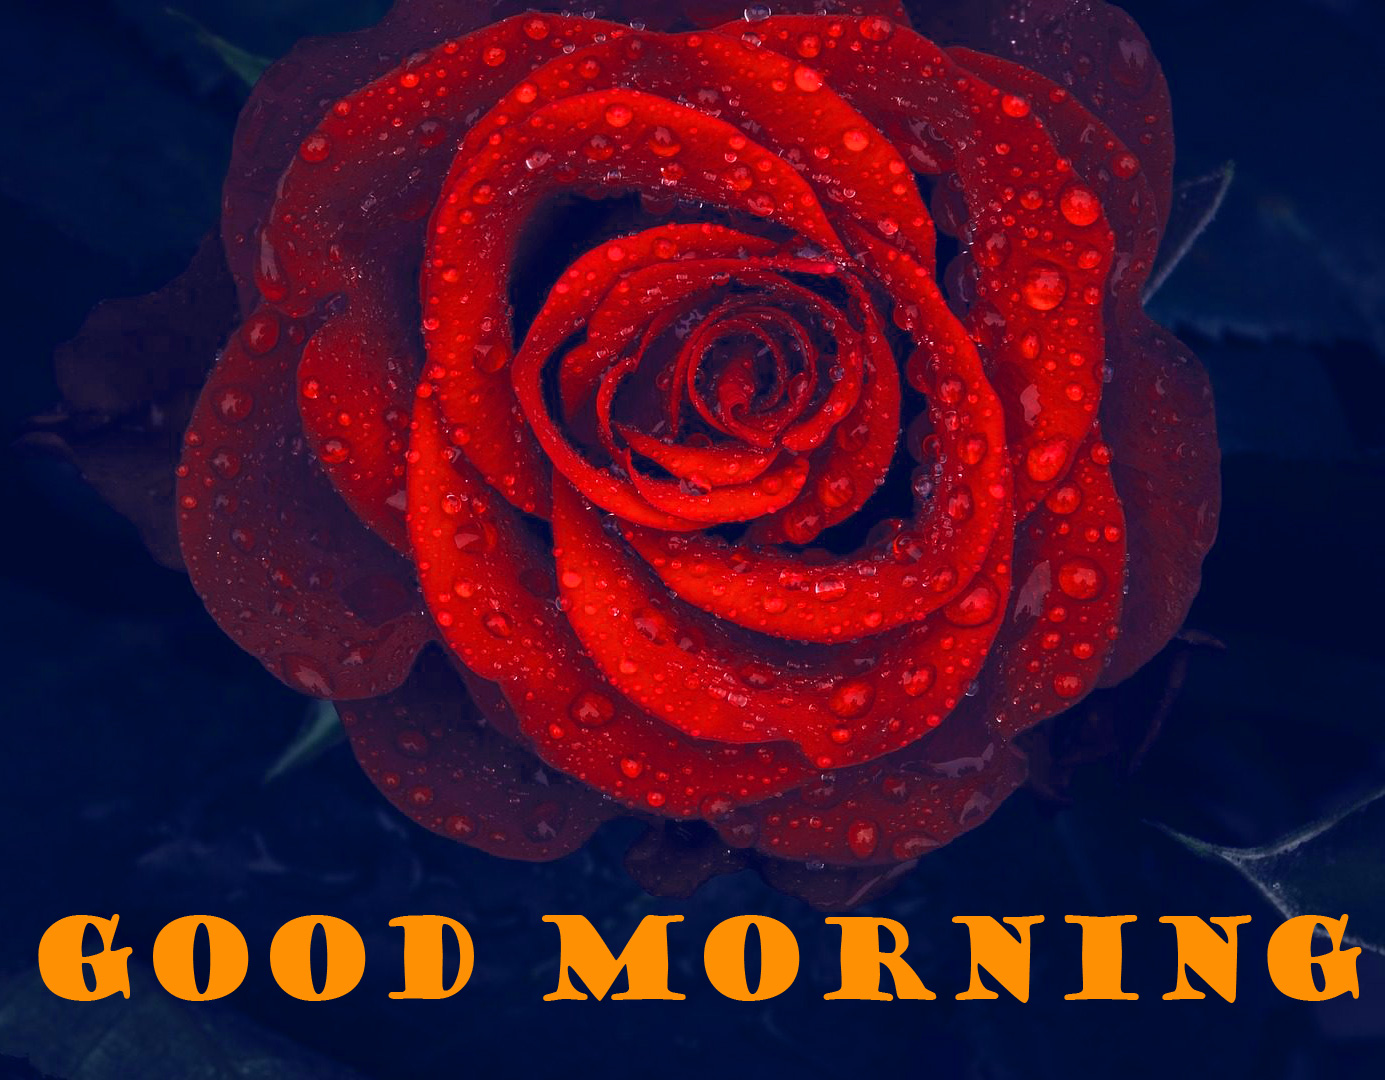 Good Morning Red Rose Wallpaper Pictures Photo HD